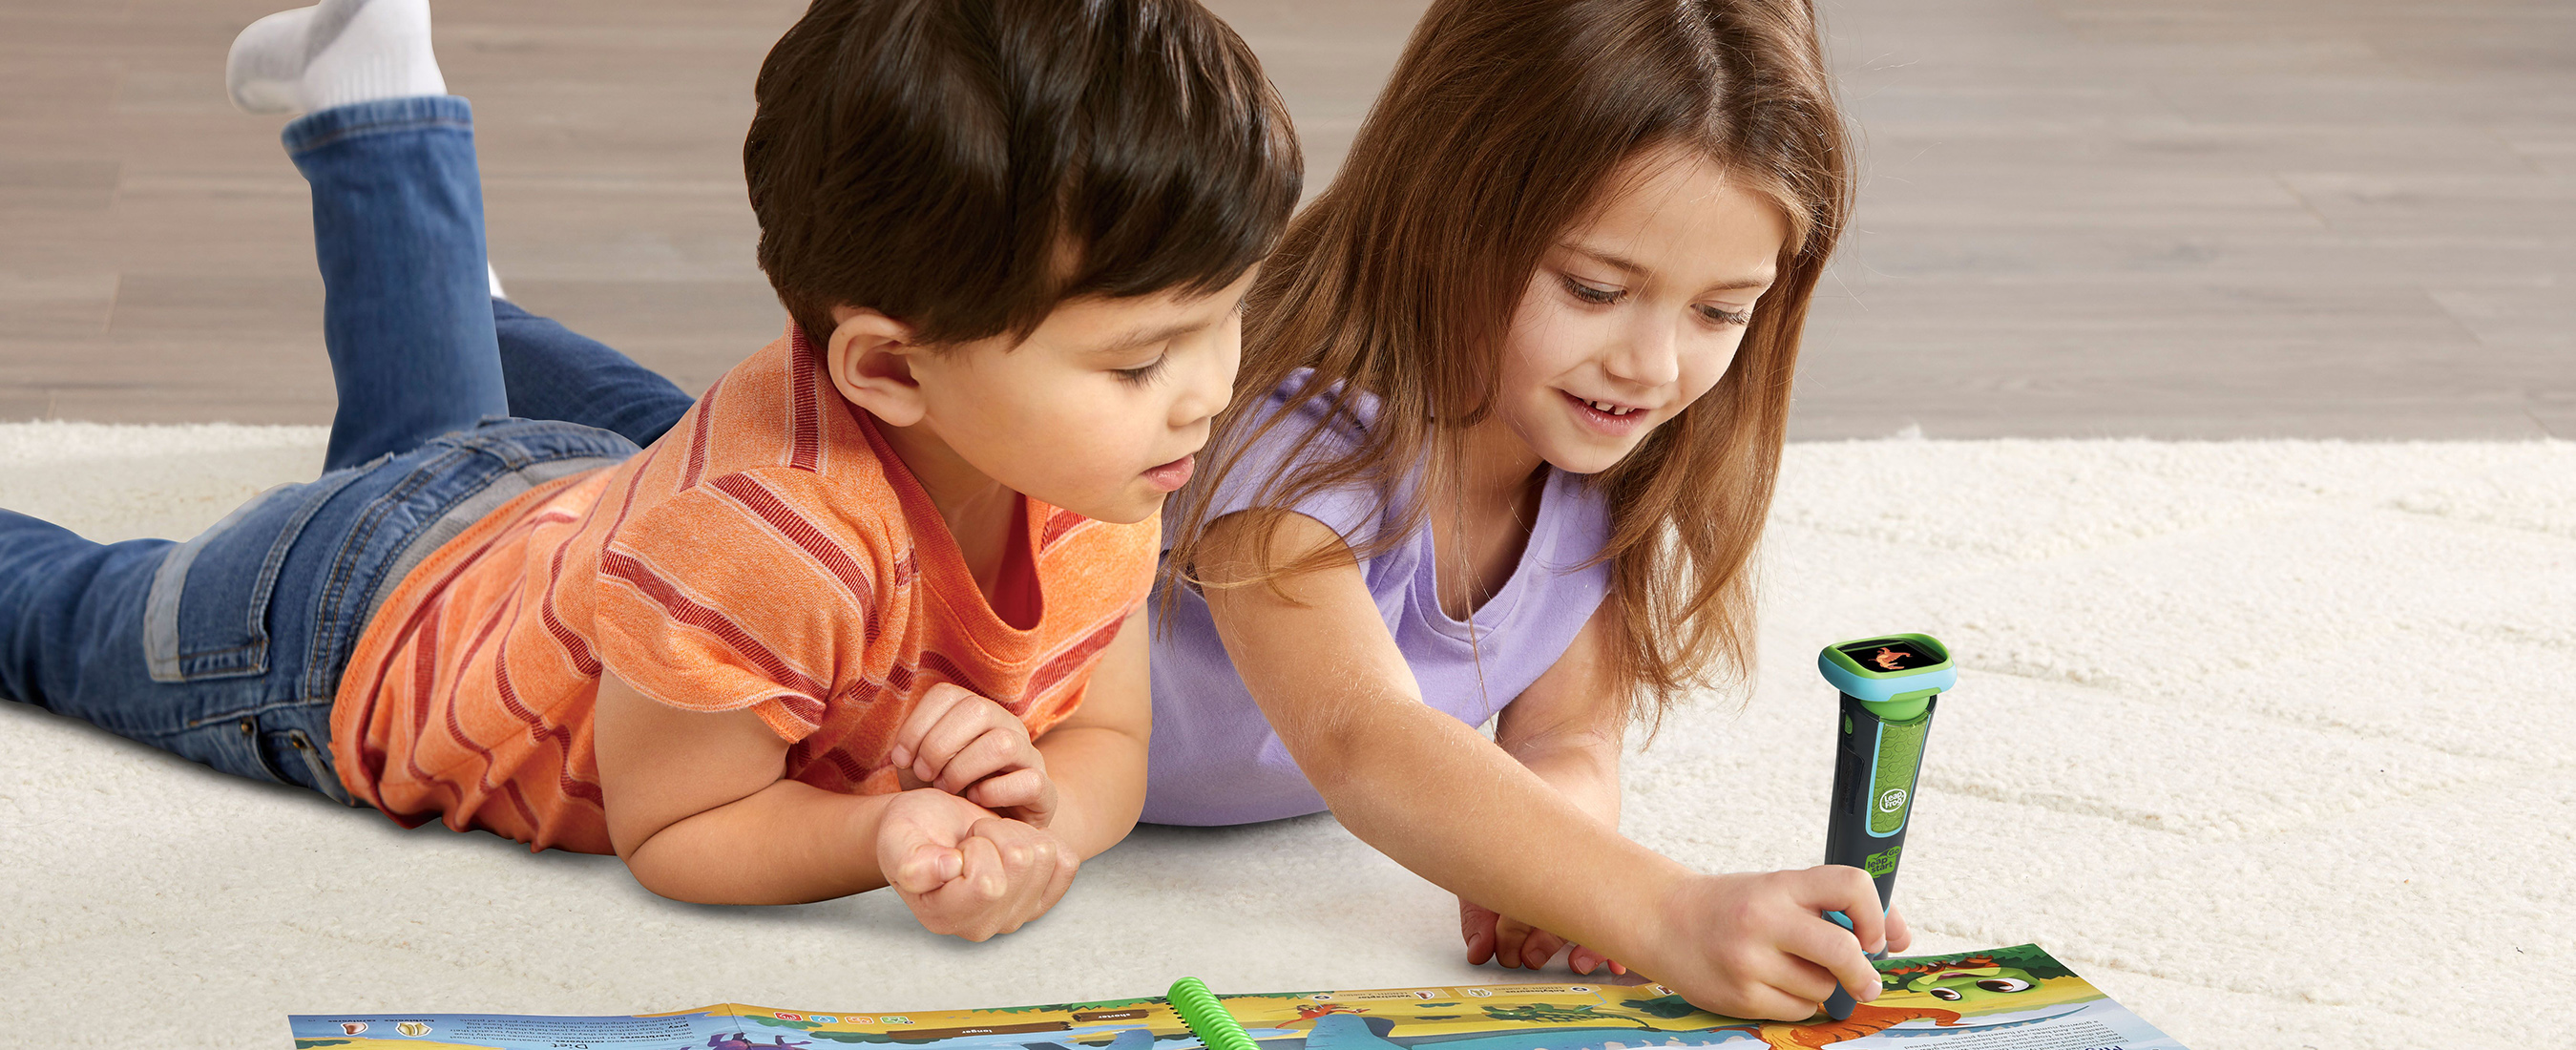 Two children playing with a book and pen